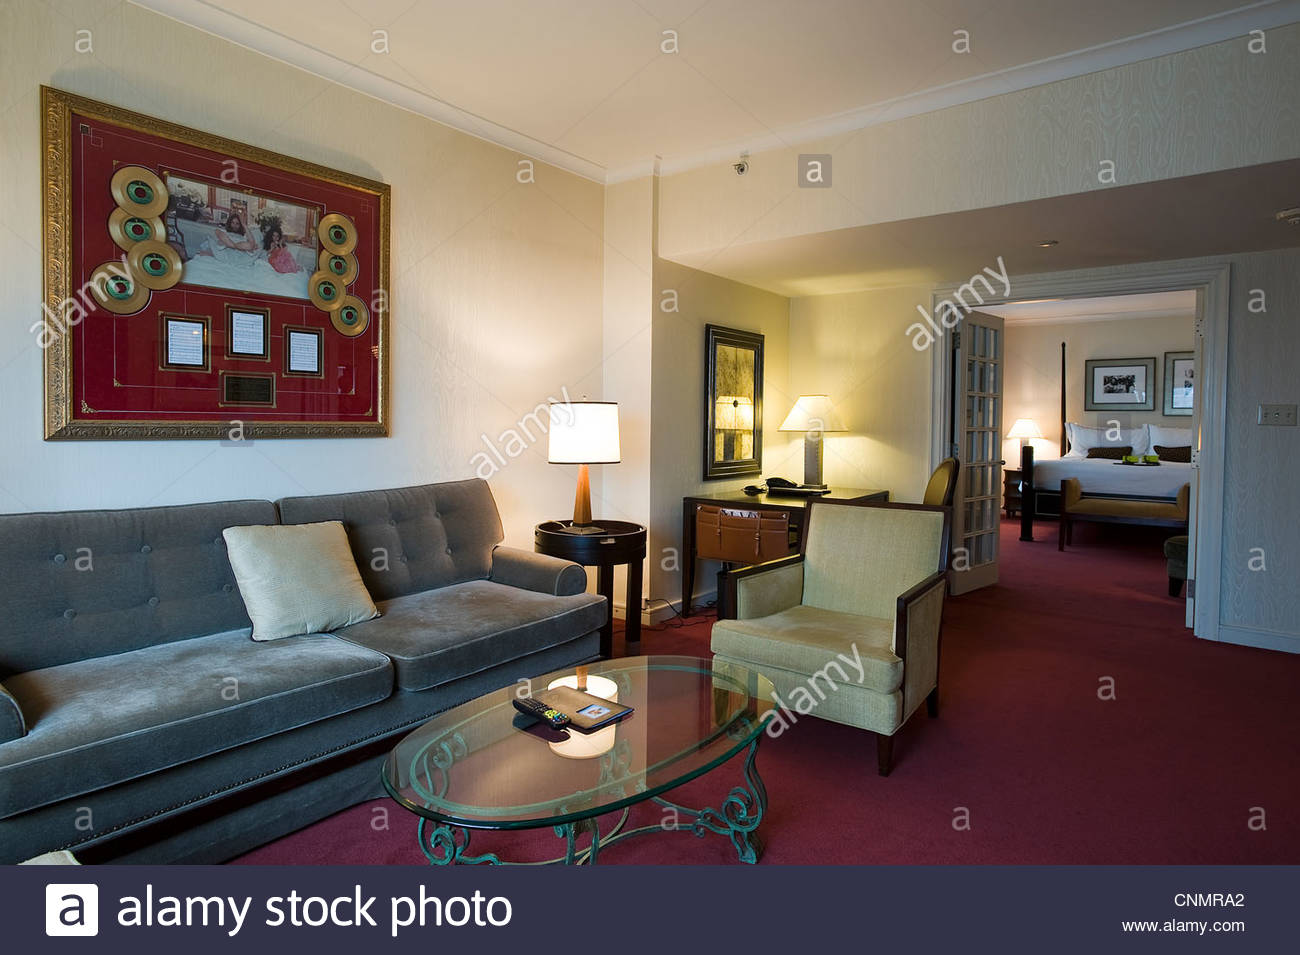 fairmont the queen elizabet,bed-in,room 1742 where john lennon and yoko ono wrote and recorded the song give peace - Stock Image